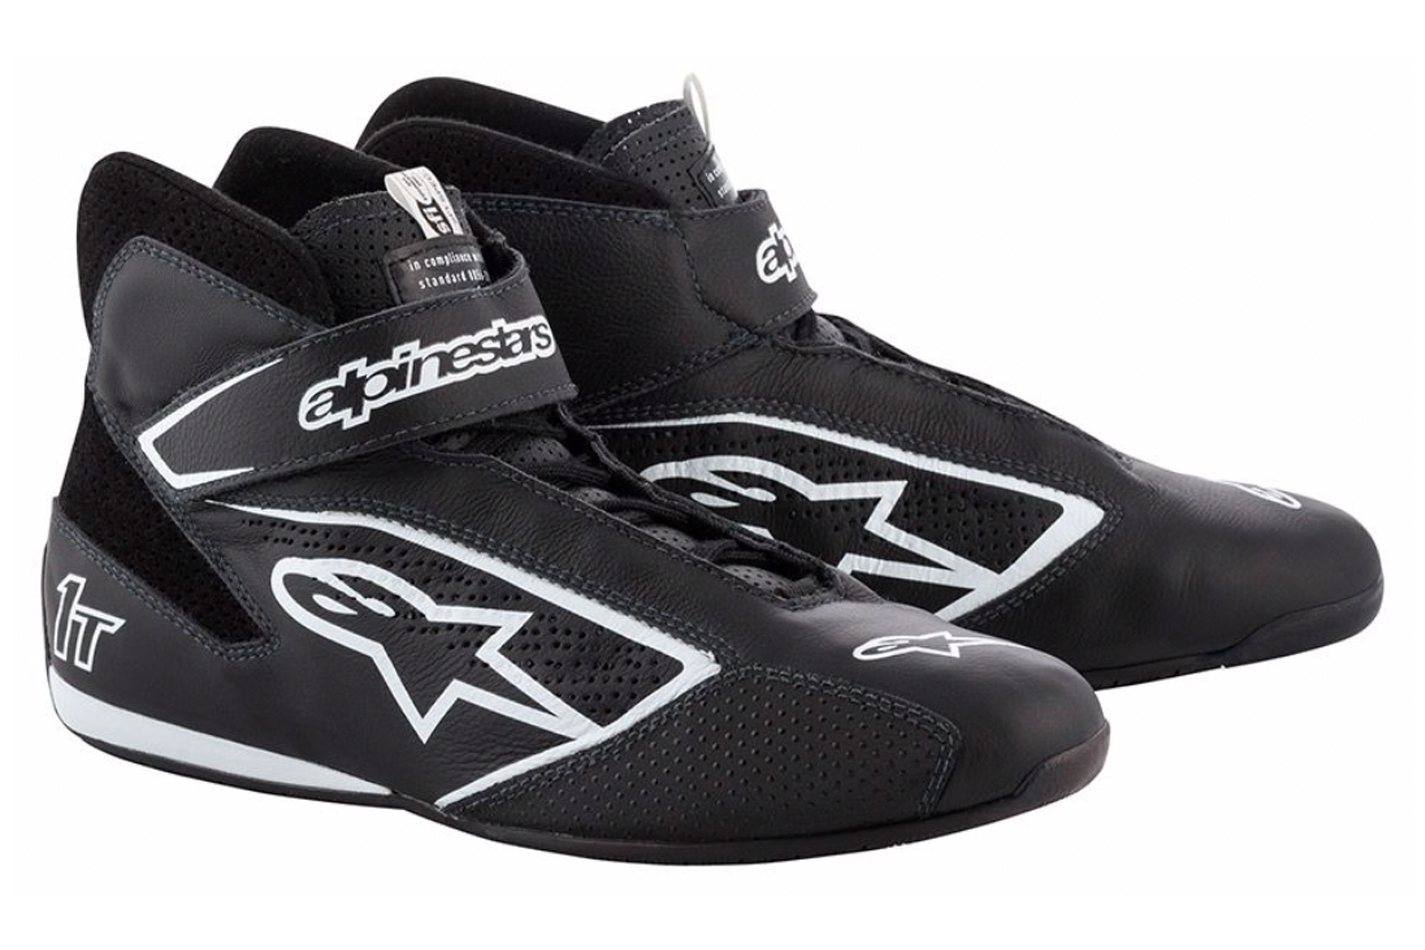 Alpinestars USA 2710119-12B-10.5 Shoe, Tech 1-T, Driving, Mid-Top, SFI 3.3, FIA Approved, Leather Outer, Nomex Inner, Black, Size 10.5, Pair